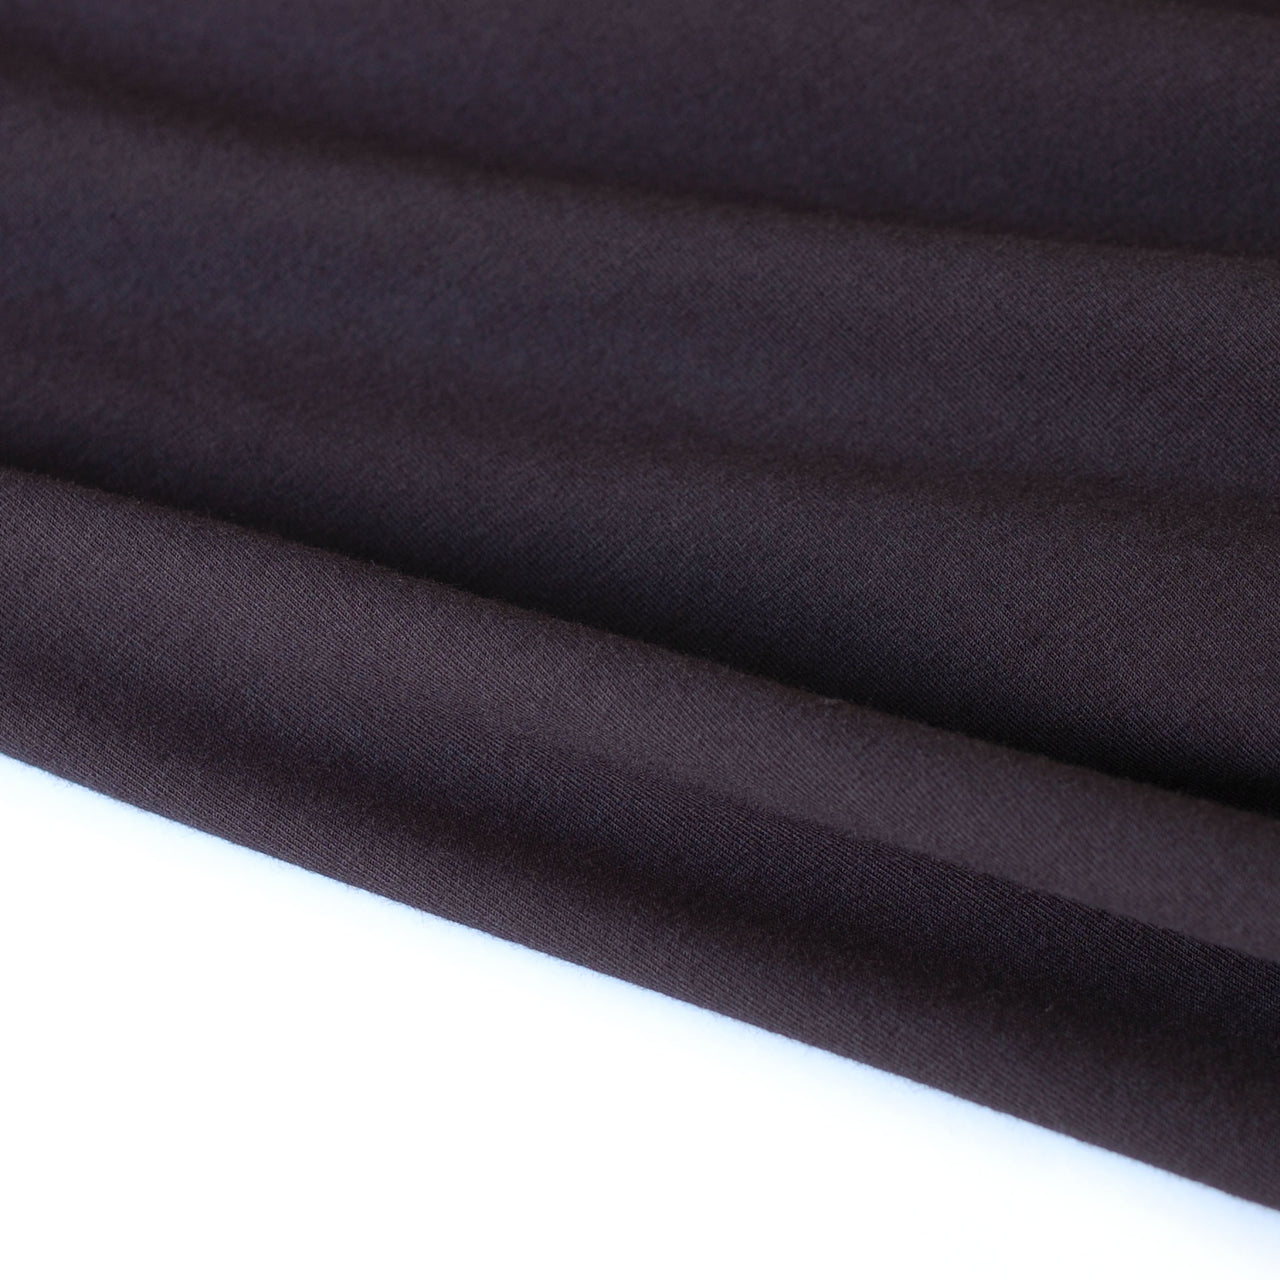 1/2M Organic Cotton Jersey in Black